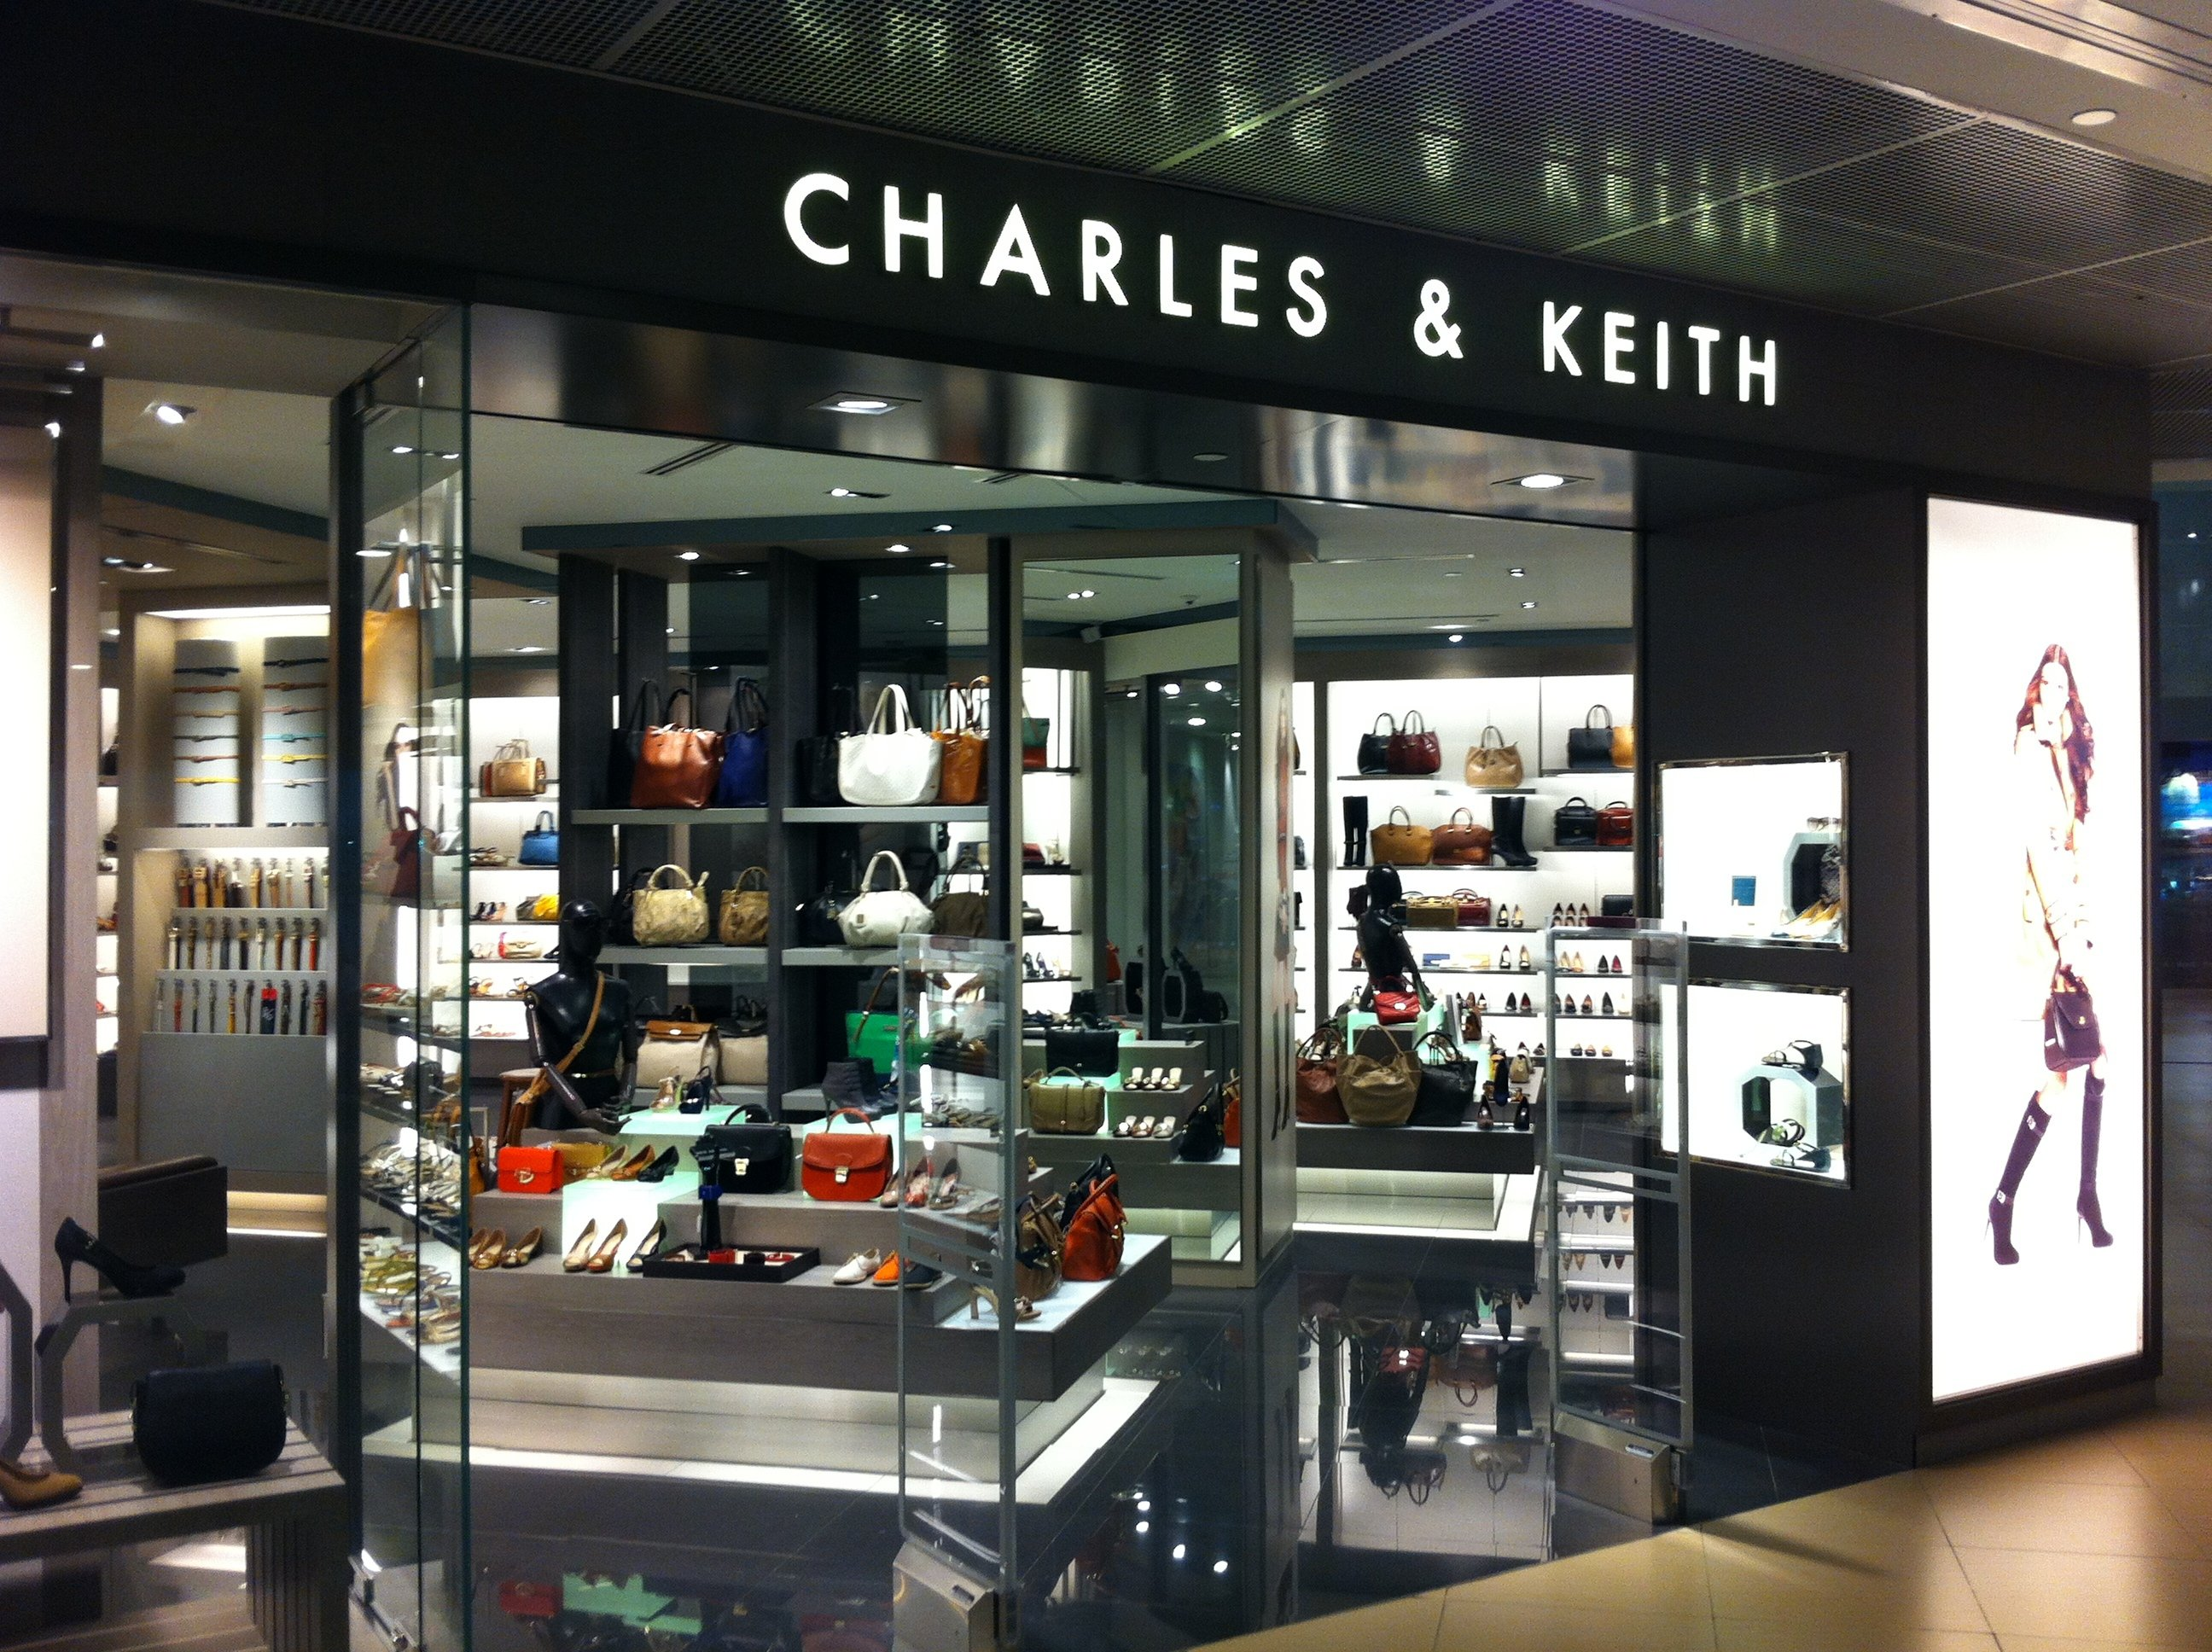 popular singapore brands - charles & keith